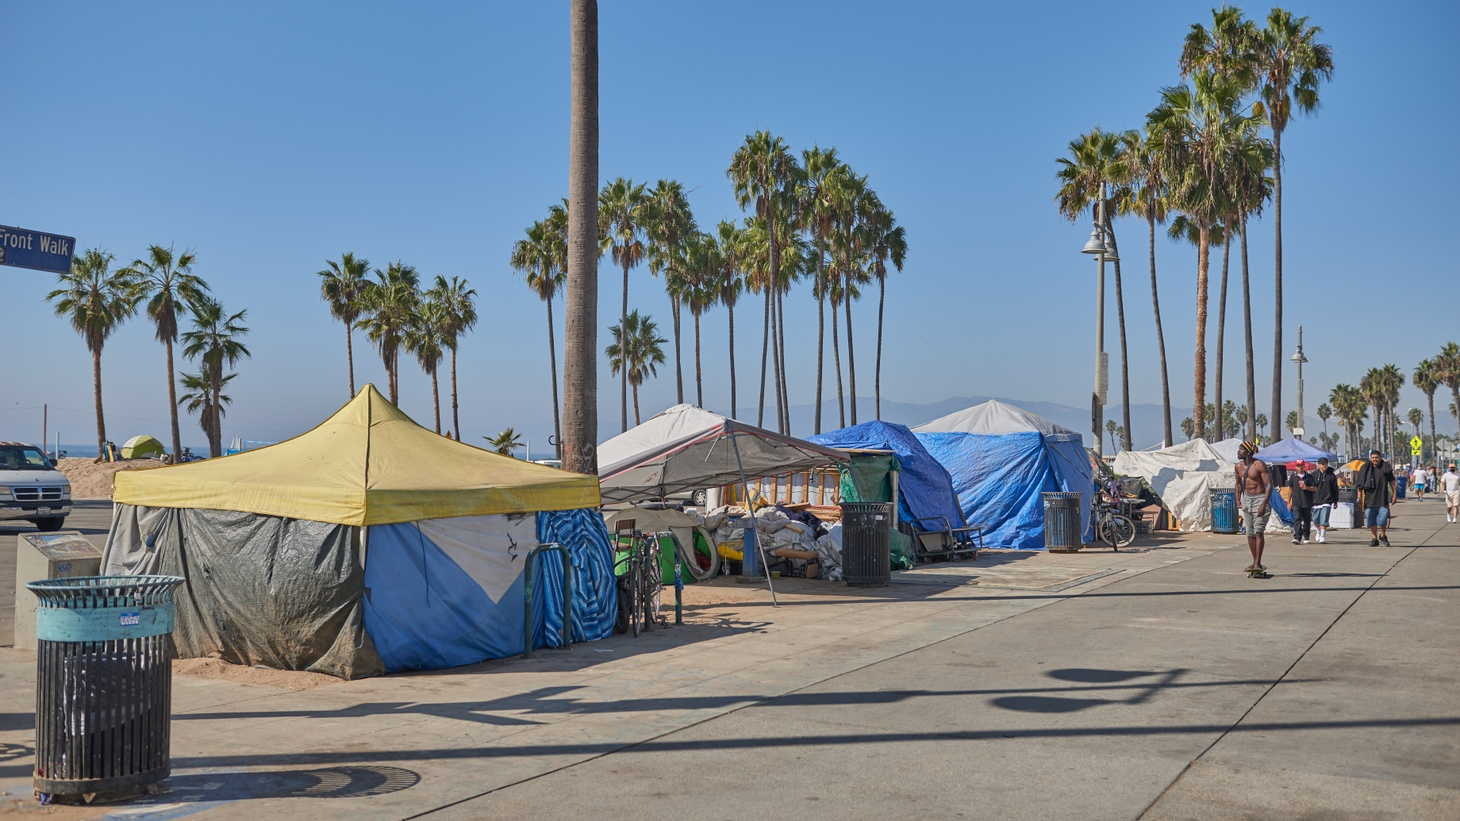 """Homeless encampments line the Venice Beach boardwalk. LA County Sheriff Alex Villanueva is pushing for the camps to be removed. But Venice Family Clinic CEO Elizabeth Benson Forer says, """"What are the intentions? Is he considering doing violent harm to people as a way to get them to go away? I'm not sure. What is his jurisdiction? Has he been ordered by the county supervisors to come in? … Why is this person popping up here and now?"""""""